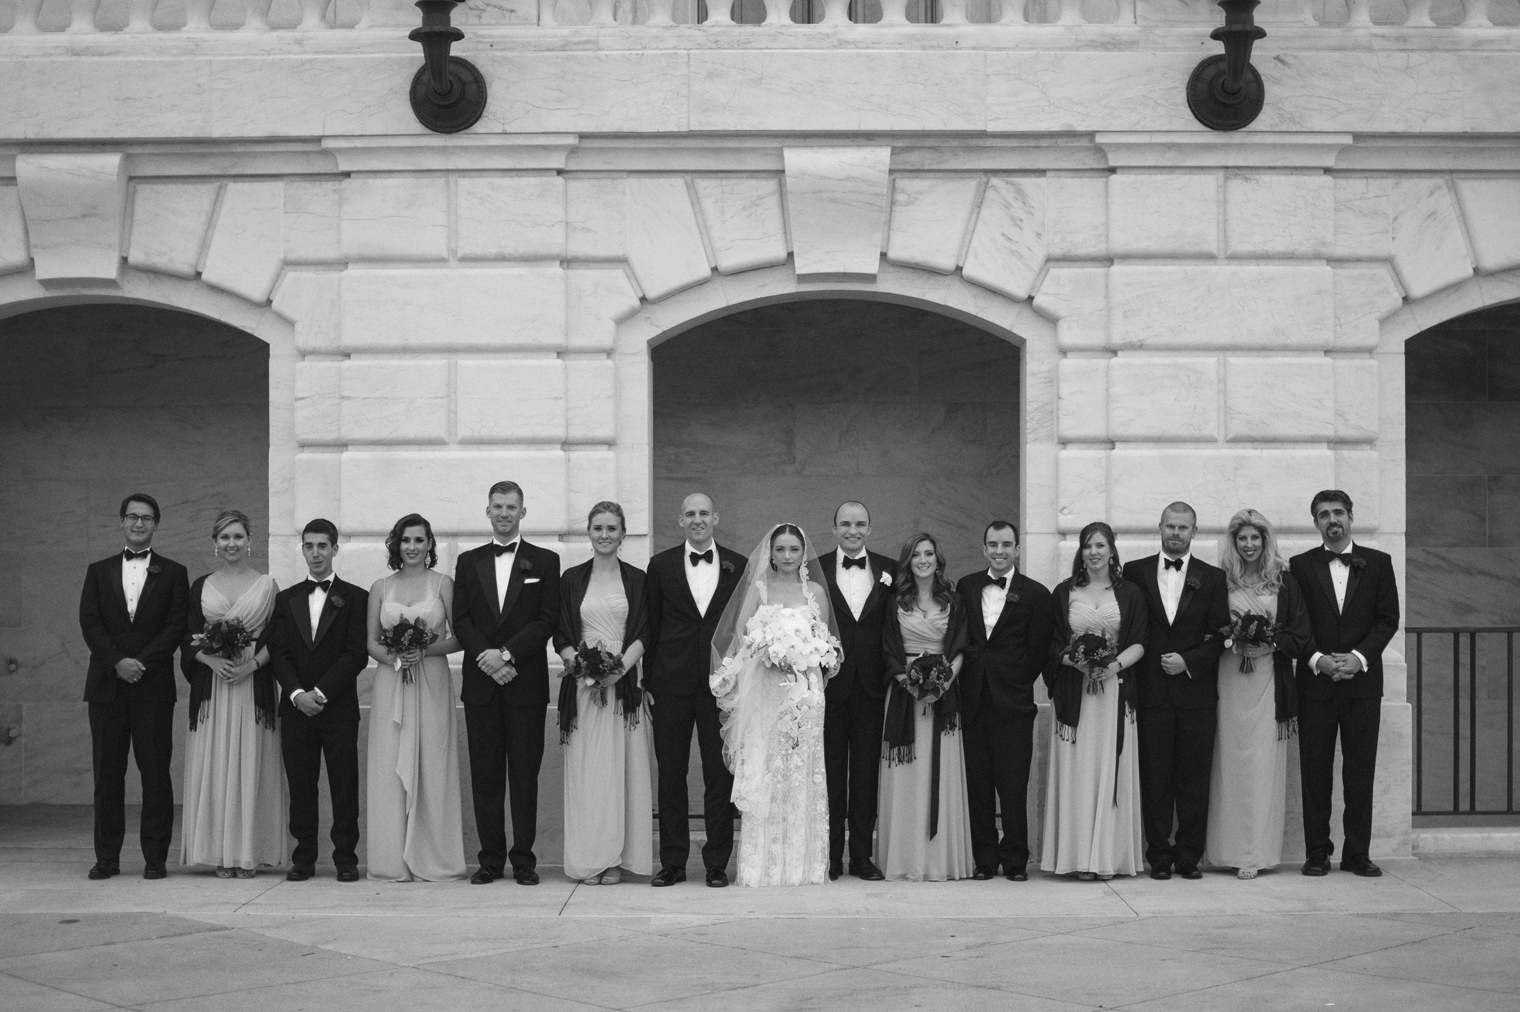 Wedding party portraits at the Detroit Institute of Arts by Wedding Photographer Heather Jowett.